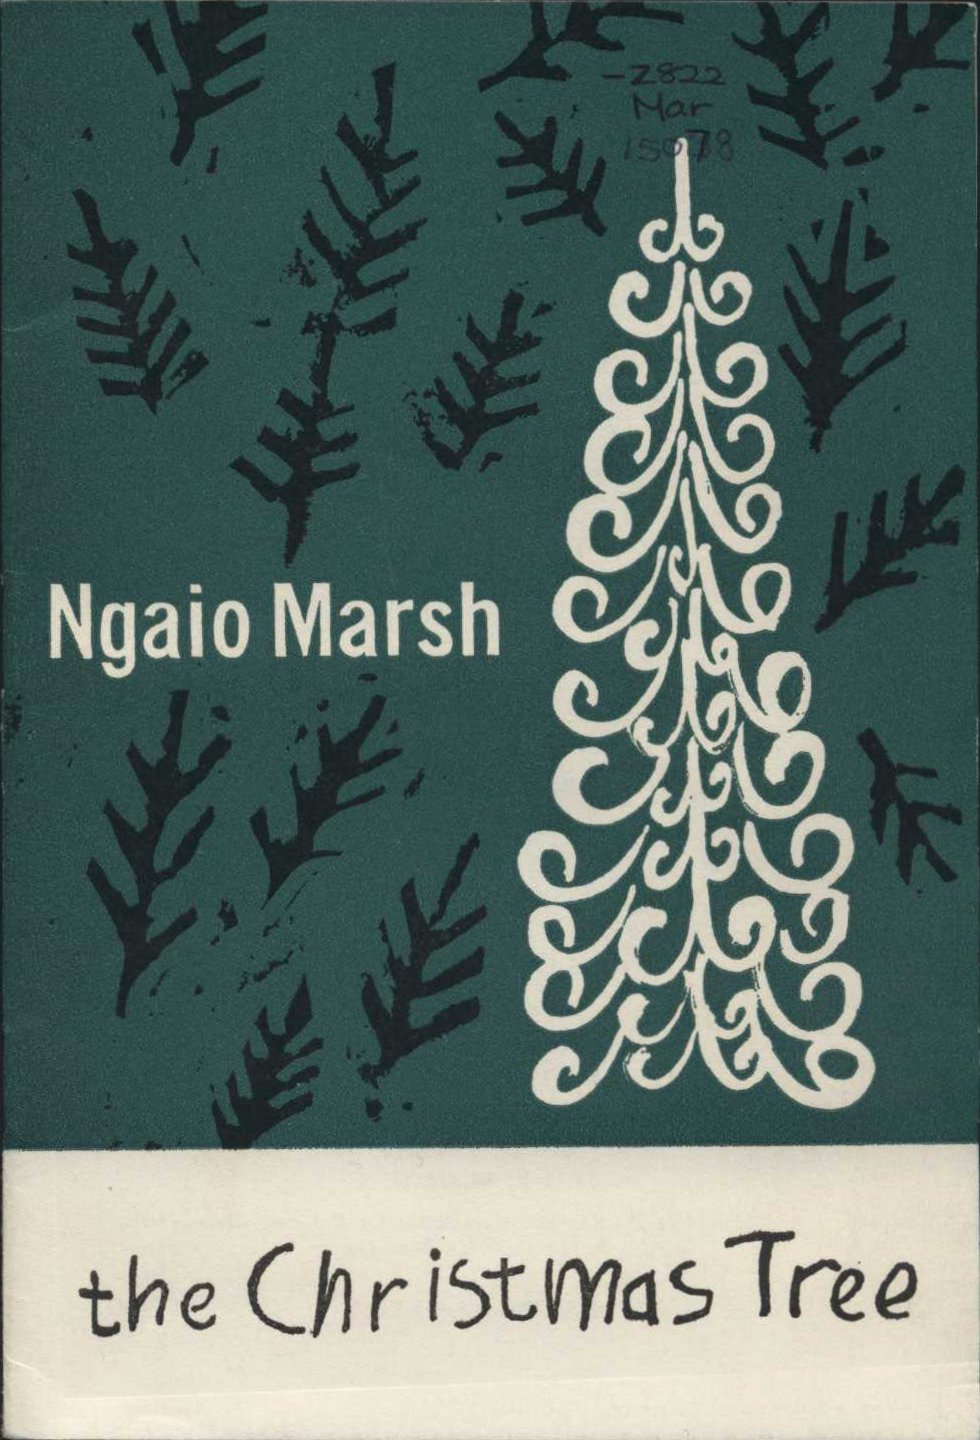 Ngaio Marsh. The Christmas tree. London: B.P.C.K. for the Religions Drama Society of Great Britain, 1962.